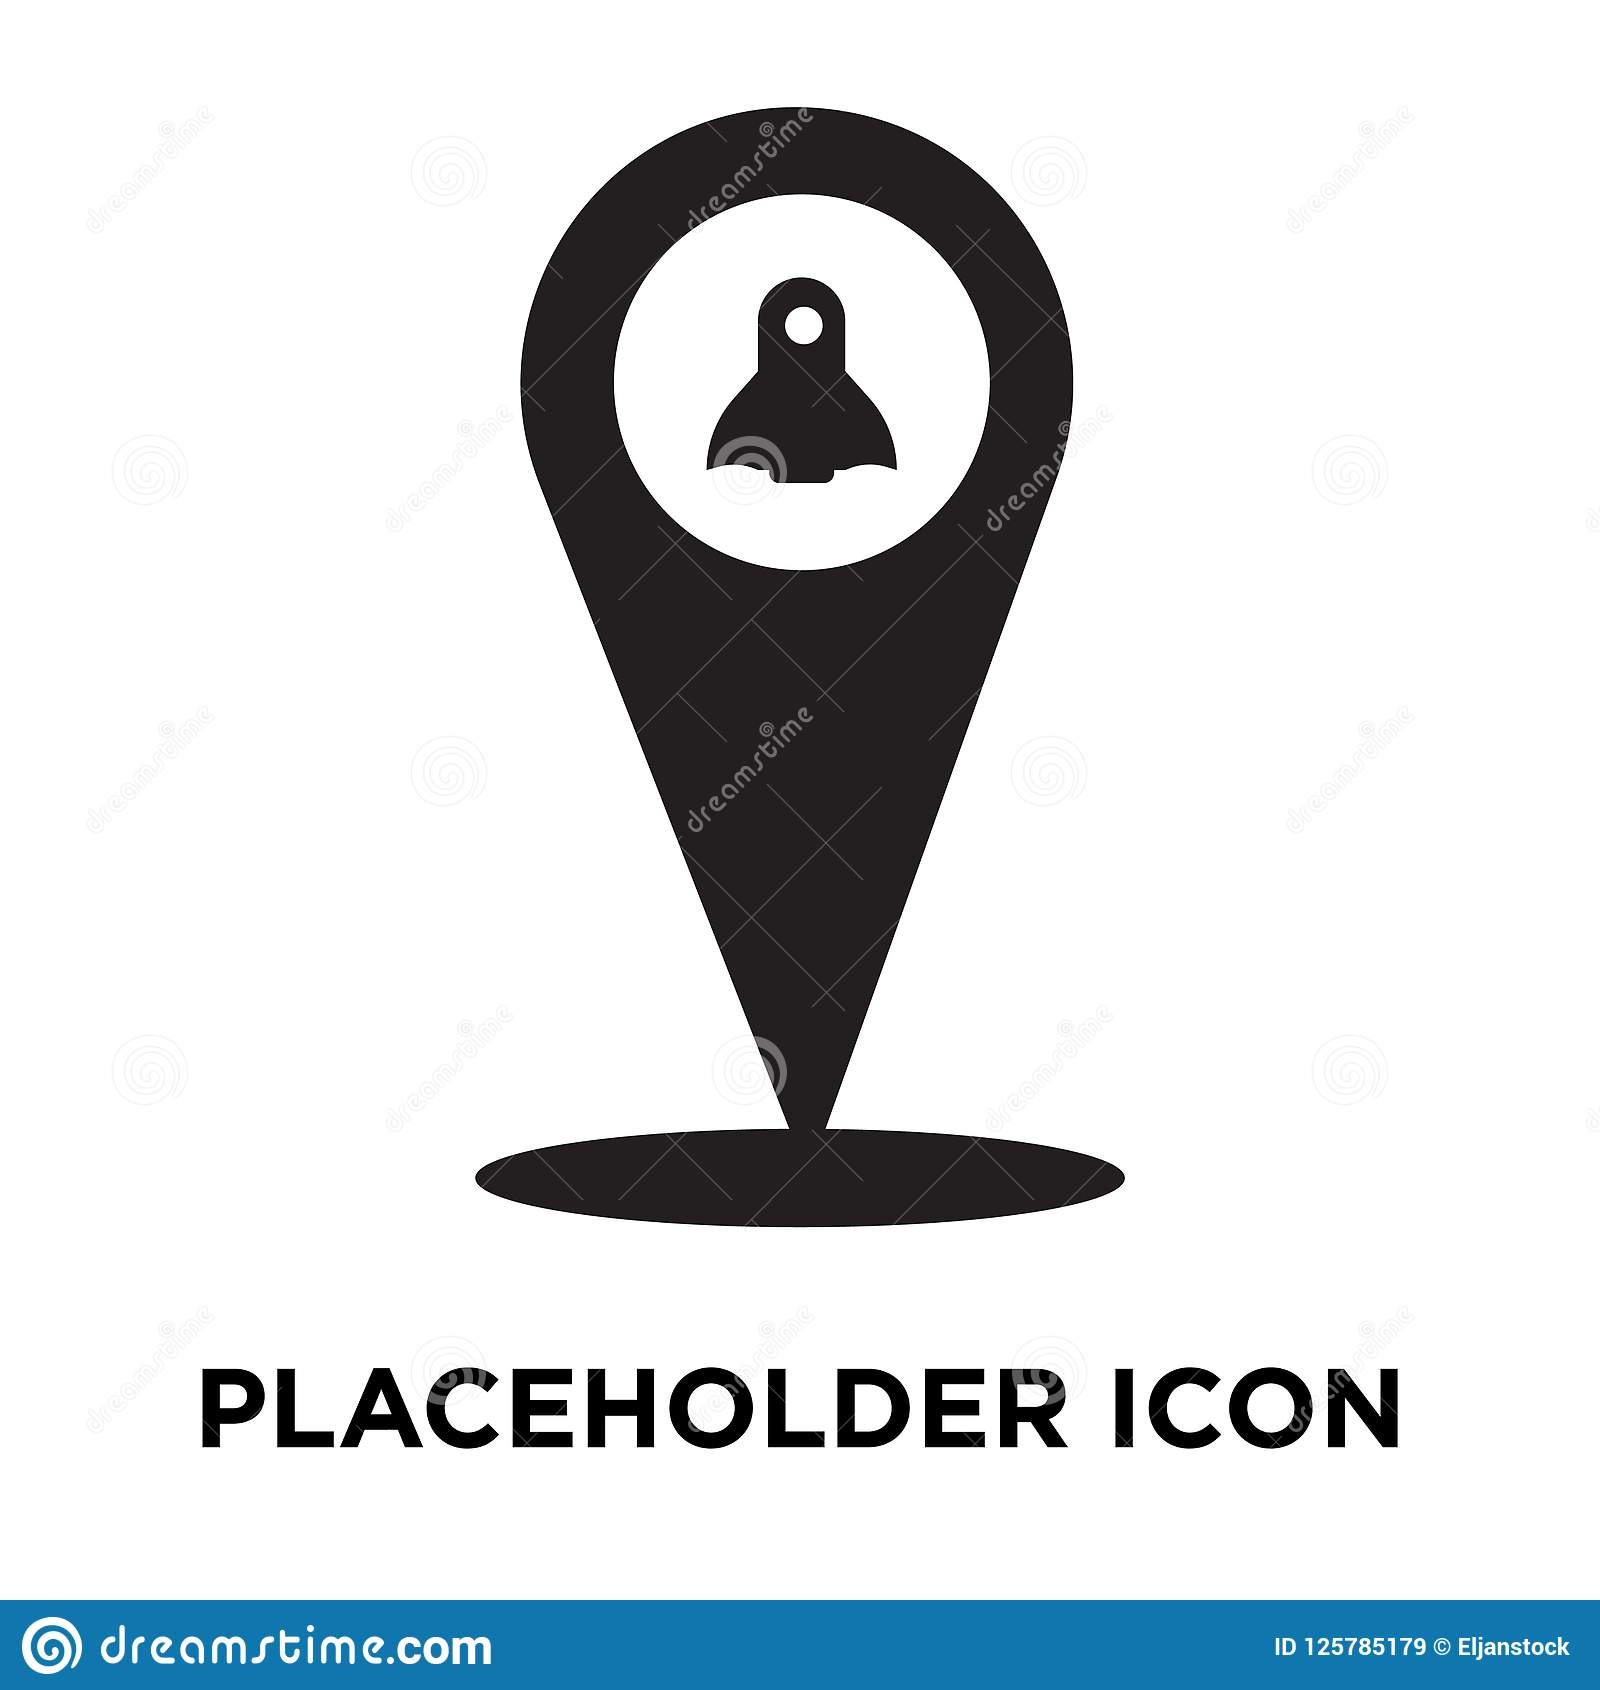 Placeholder Icon Vector Isolated On White Background Logo